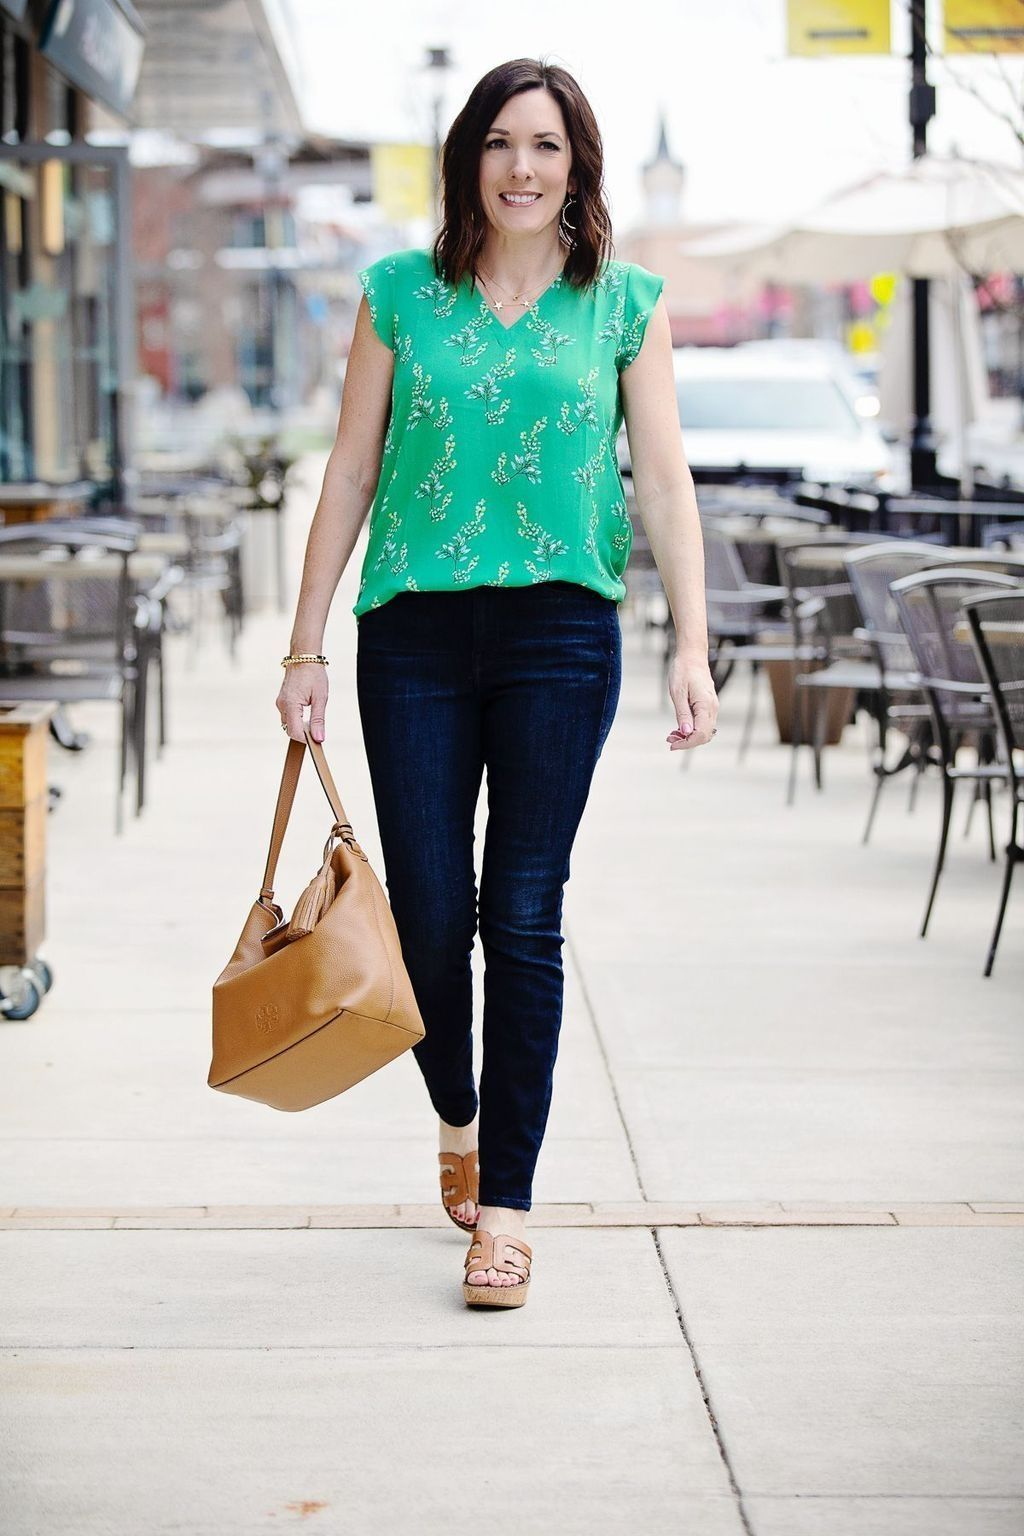 27 Elegant Summer Outfits Ideas For Women Over 27 Years Old - The